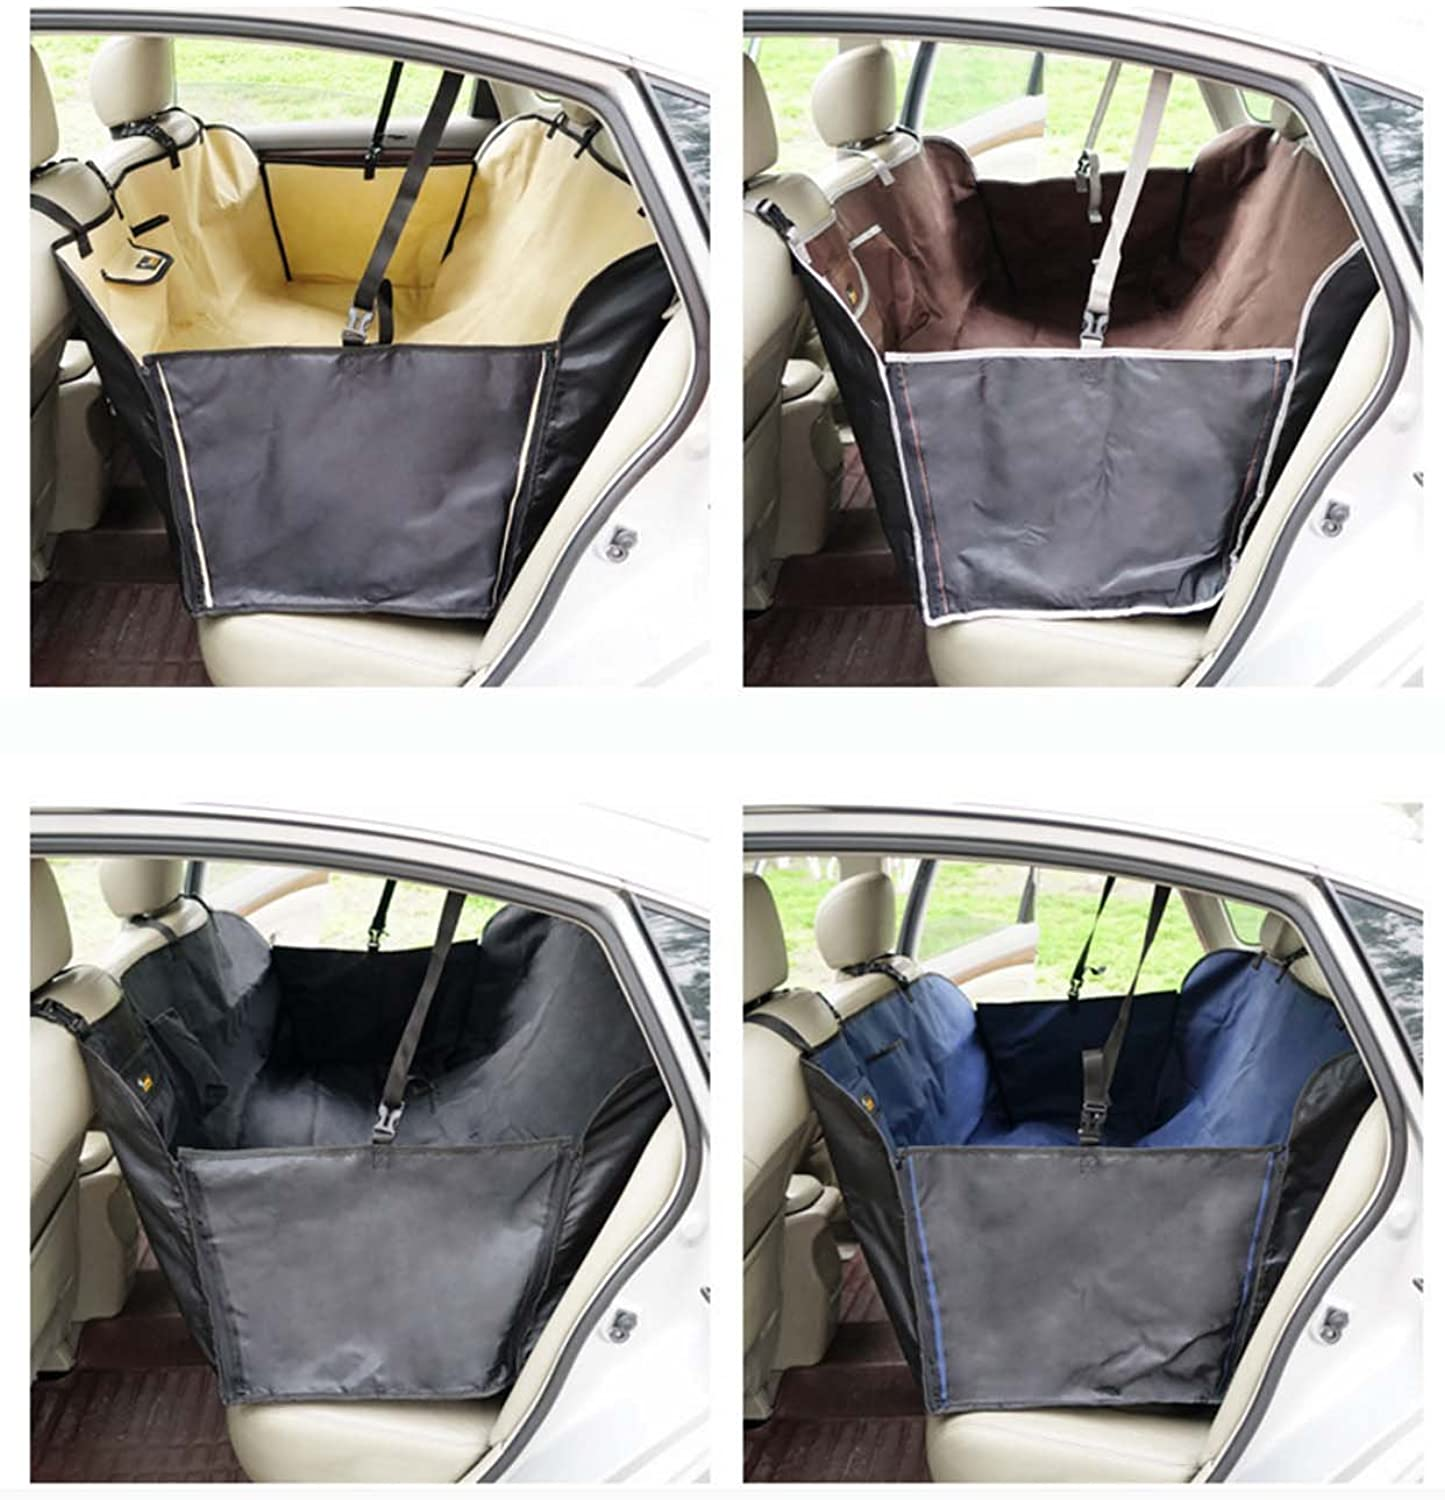 Travel Dog Seat Covers with Extra Side Flaps, Dog Car Seat Cover Back Seat Cover with Car Safety Seat Belt Waterproof Nonslip and Hammock Congreenible Universal (color   Black)